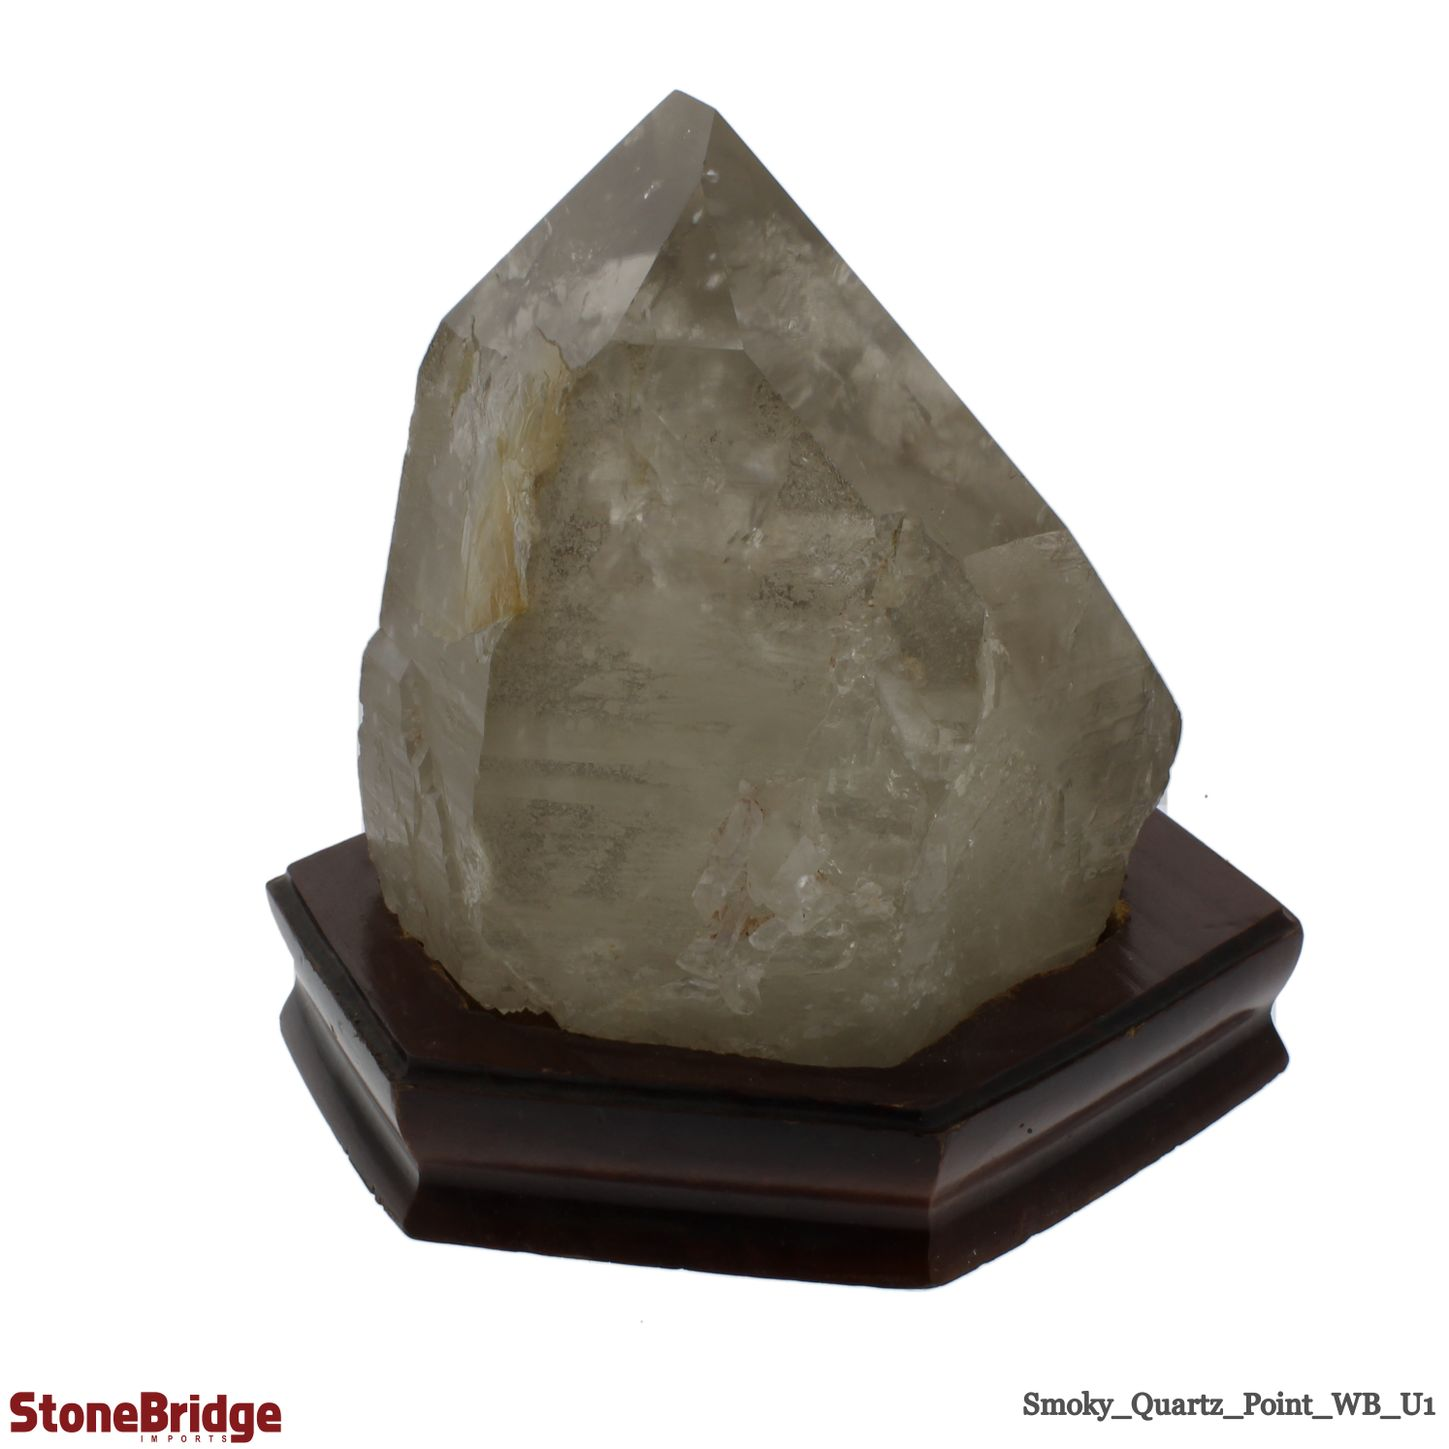 POSQWBU01_Smoky_Quartz_Point_WB_U1_3.jpg